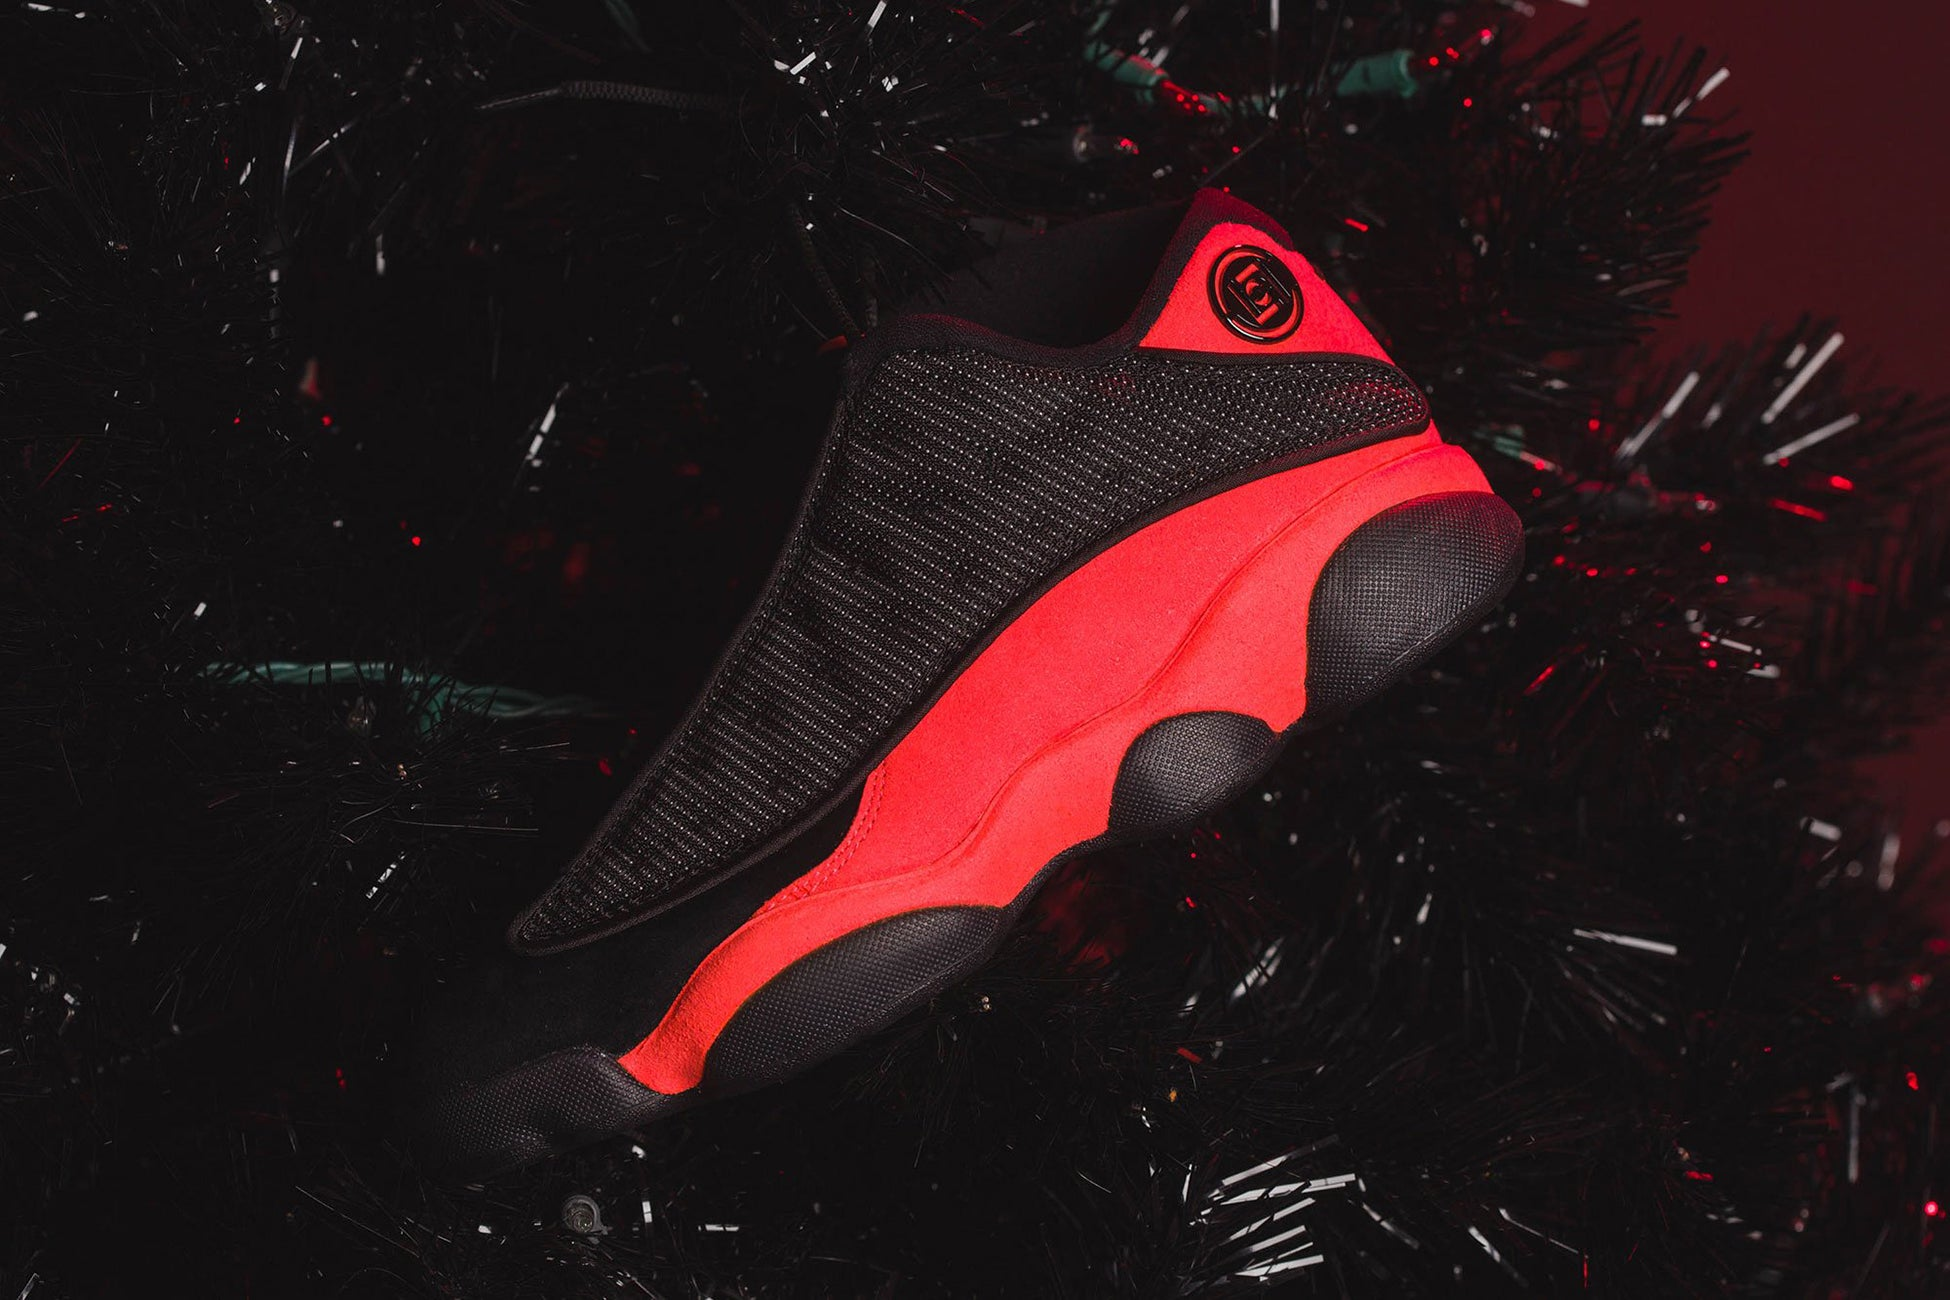 d0674b726812ac CLOT x Air Jordan XIII Low